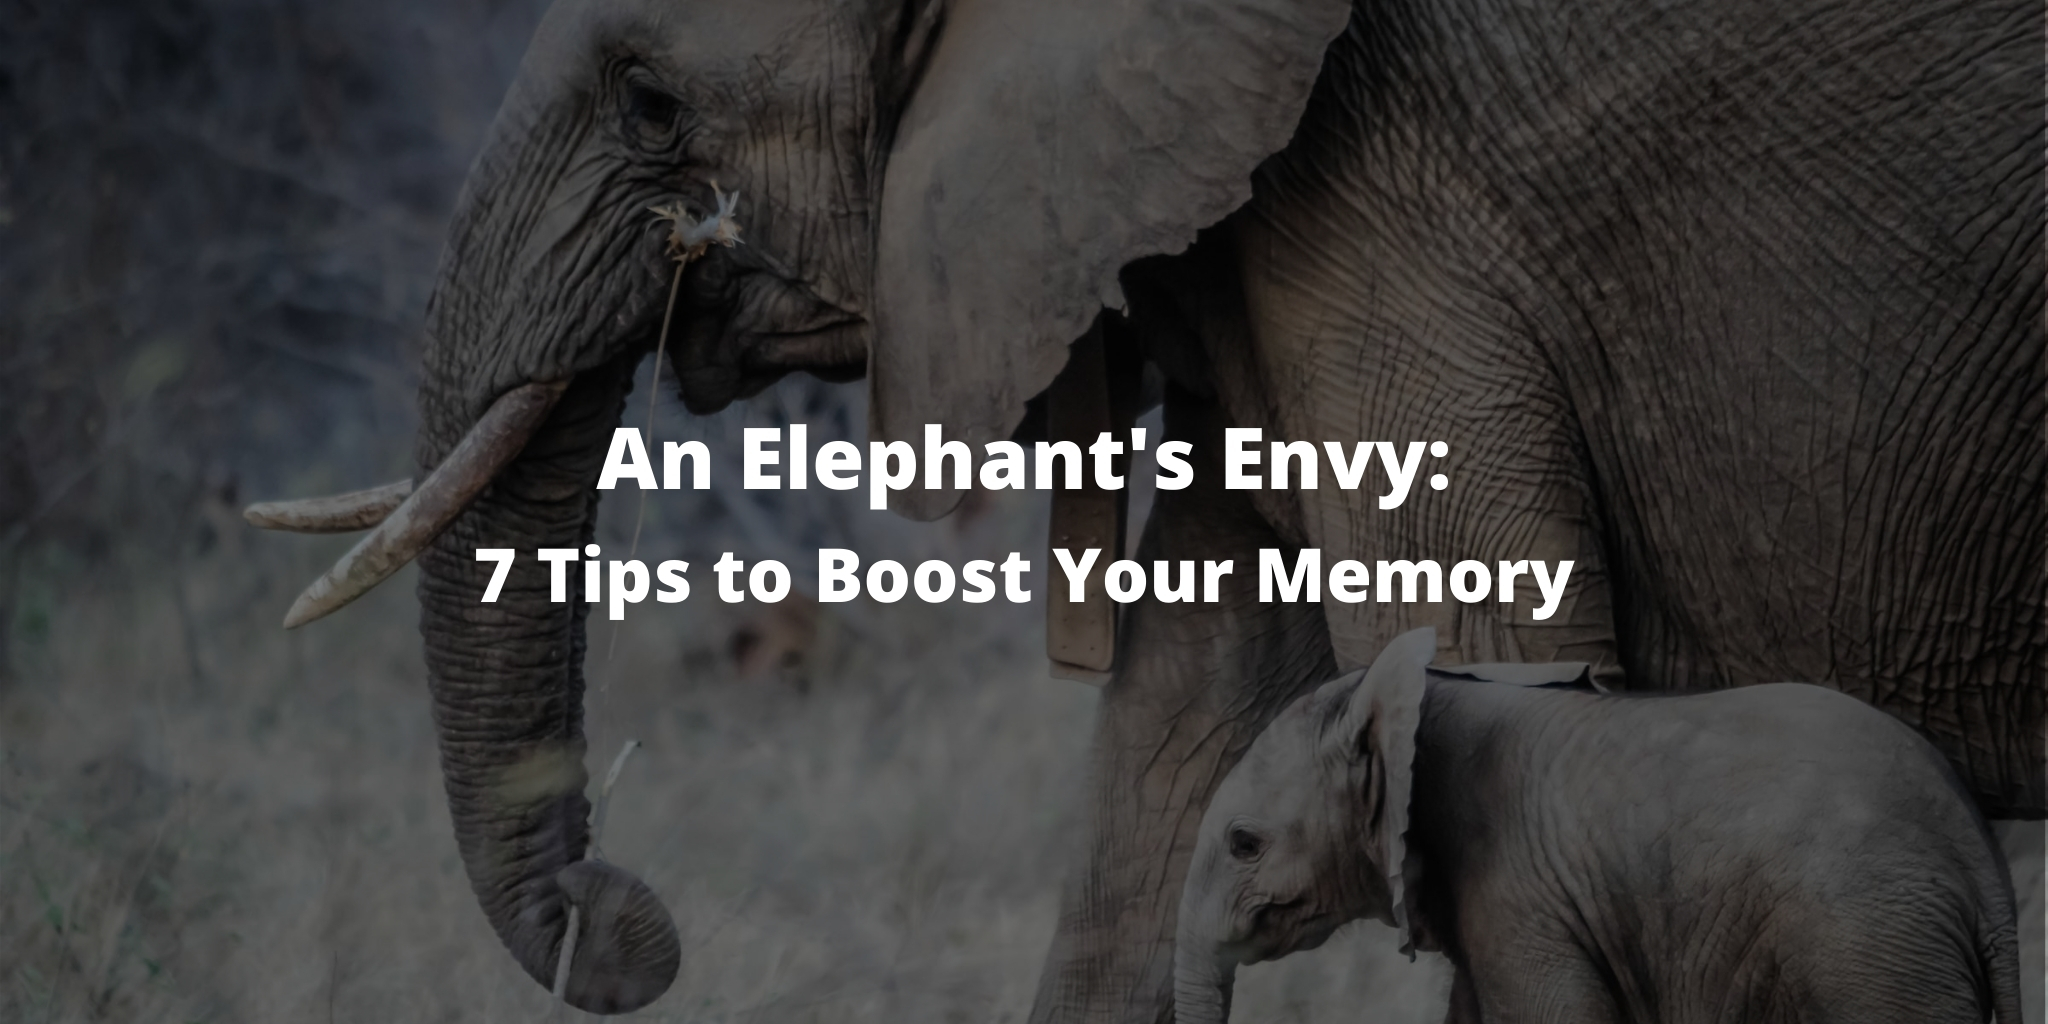 An Elephant's Envy: 7 Tips to Boost Your Memory